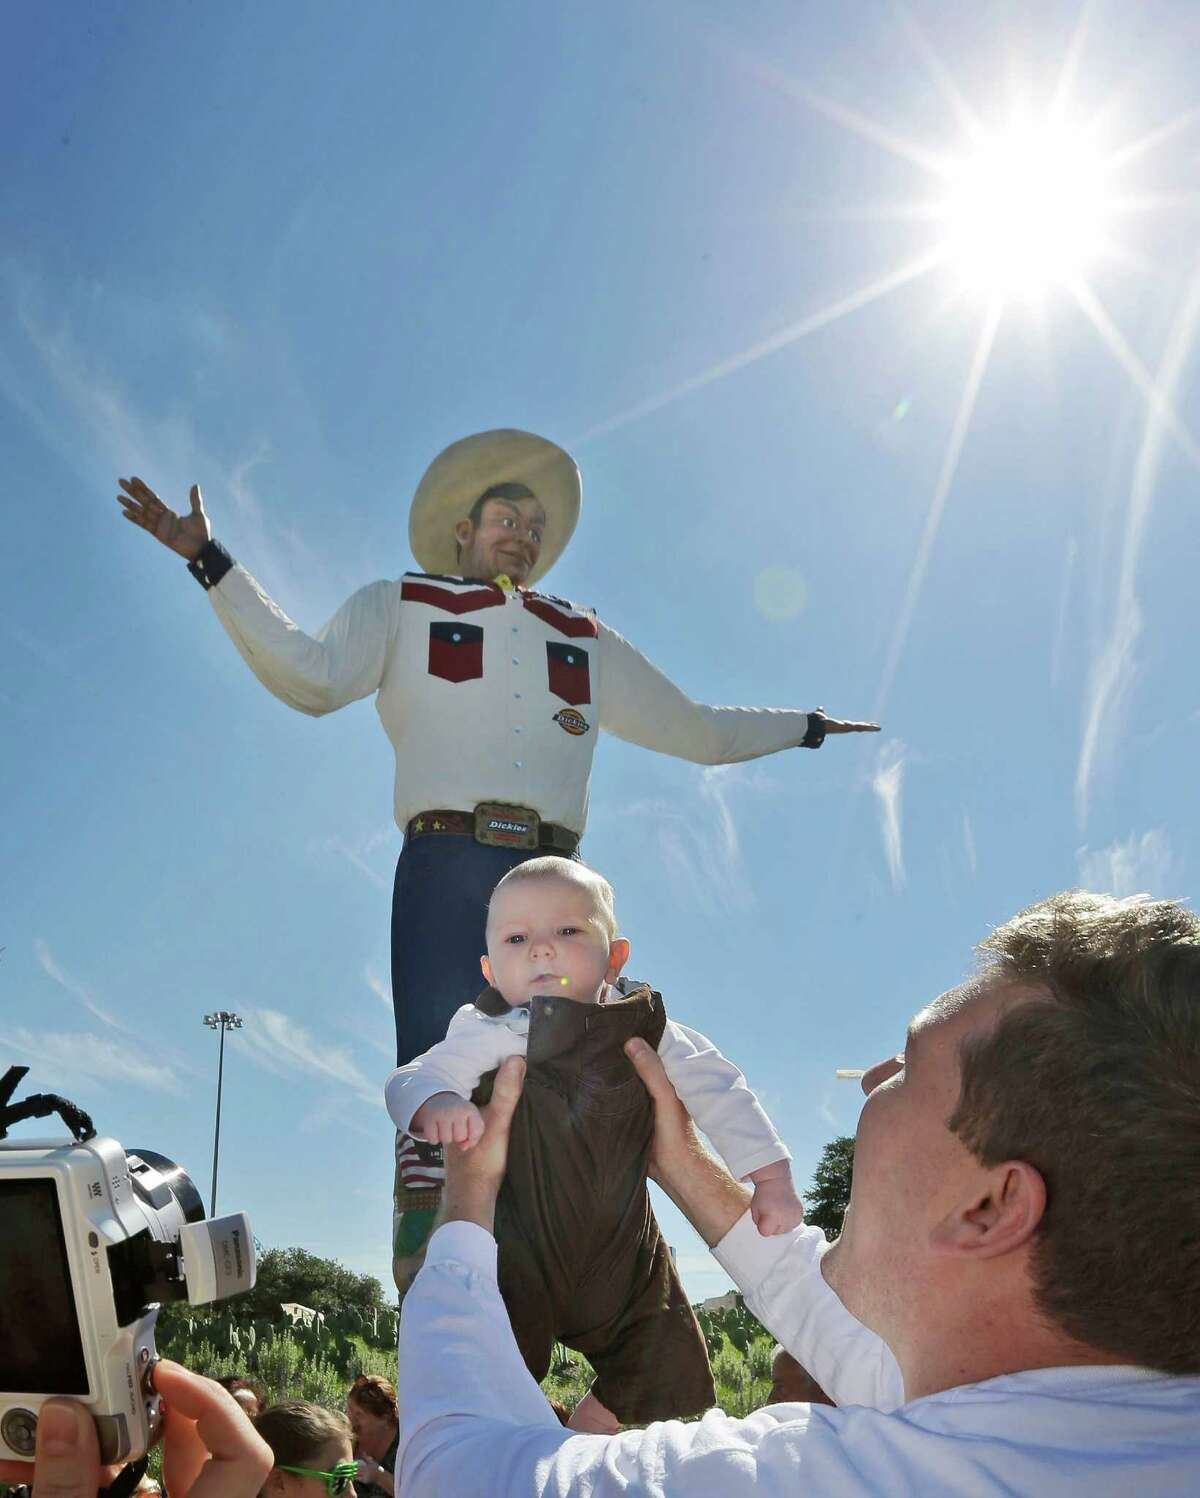 Shorter family roadtrips with screaming babies The month-long State Fair of Texas would be easier for families to visit with the train. Unless they enjoy being in a car for four hours with screaming kids.